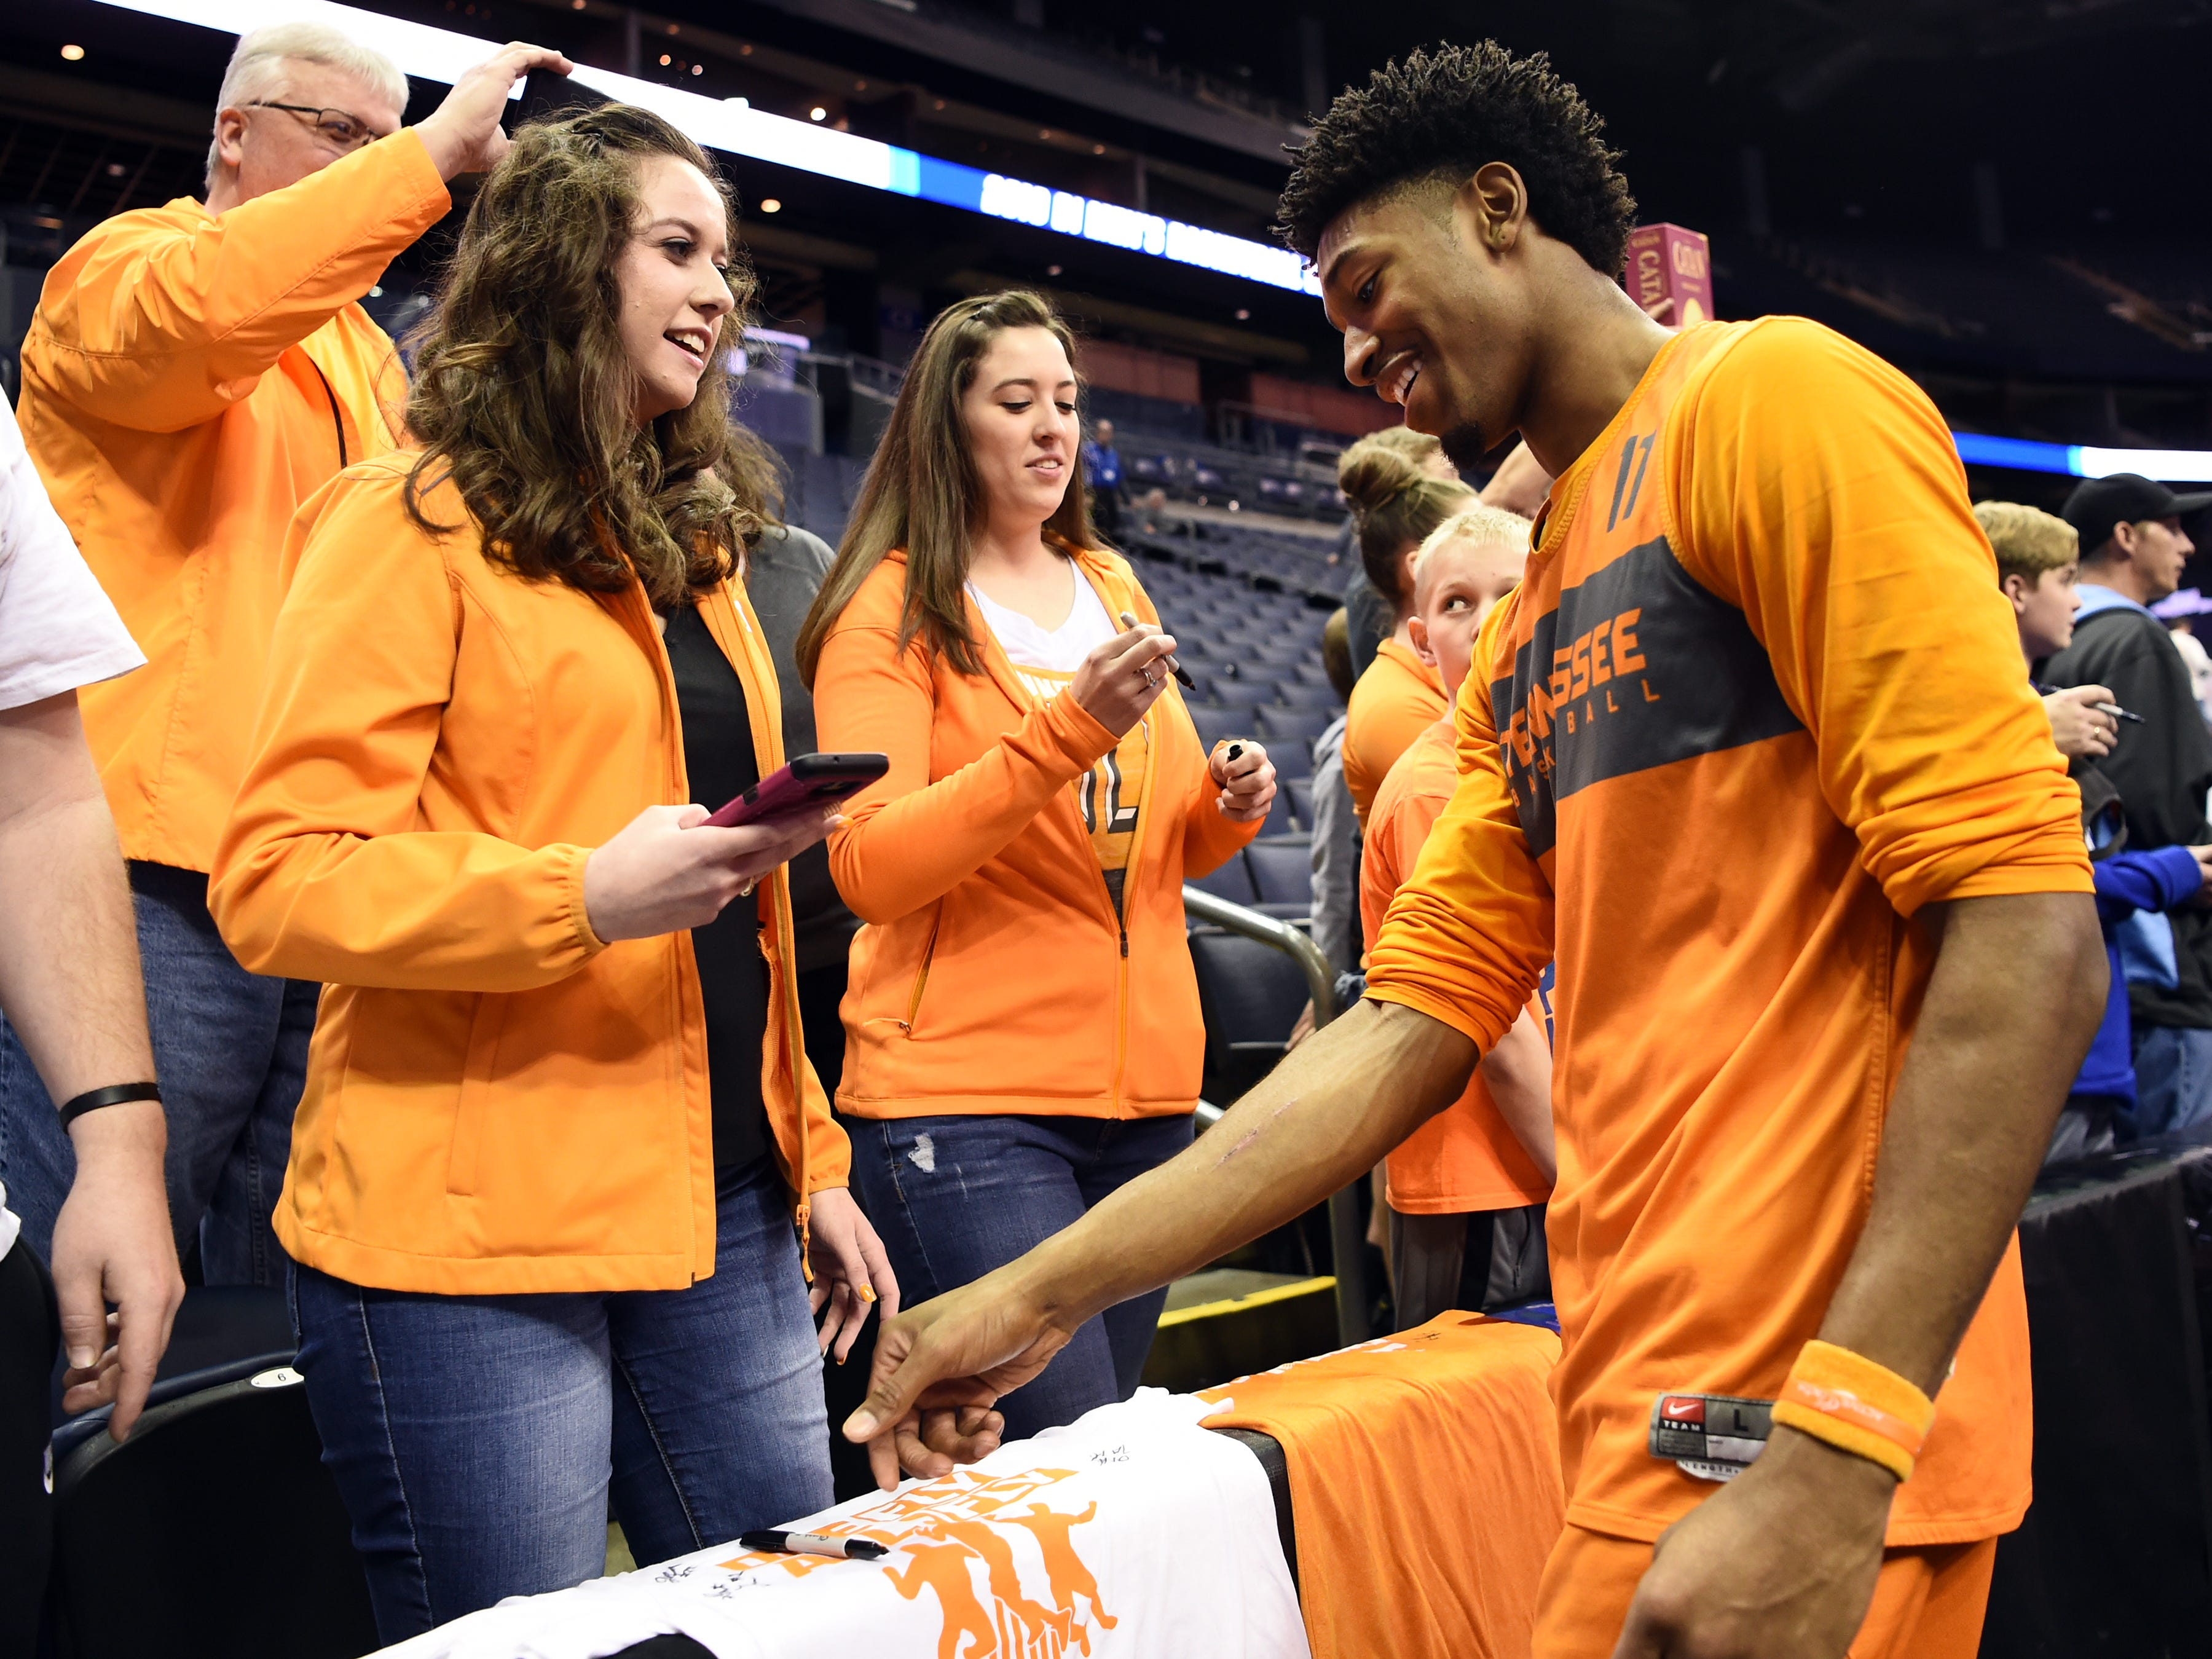 Tennessee forward Kyle Alexander (11) signs items for fans after Tennessee's practice on Thursday, March 21, 2019, before their first round NCAA Tournament game against Colgate at Nationwide Arena in Columbus, Ohio.